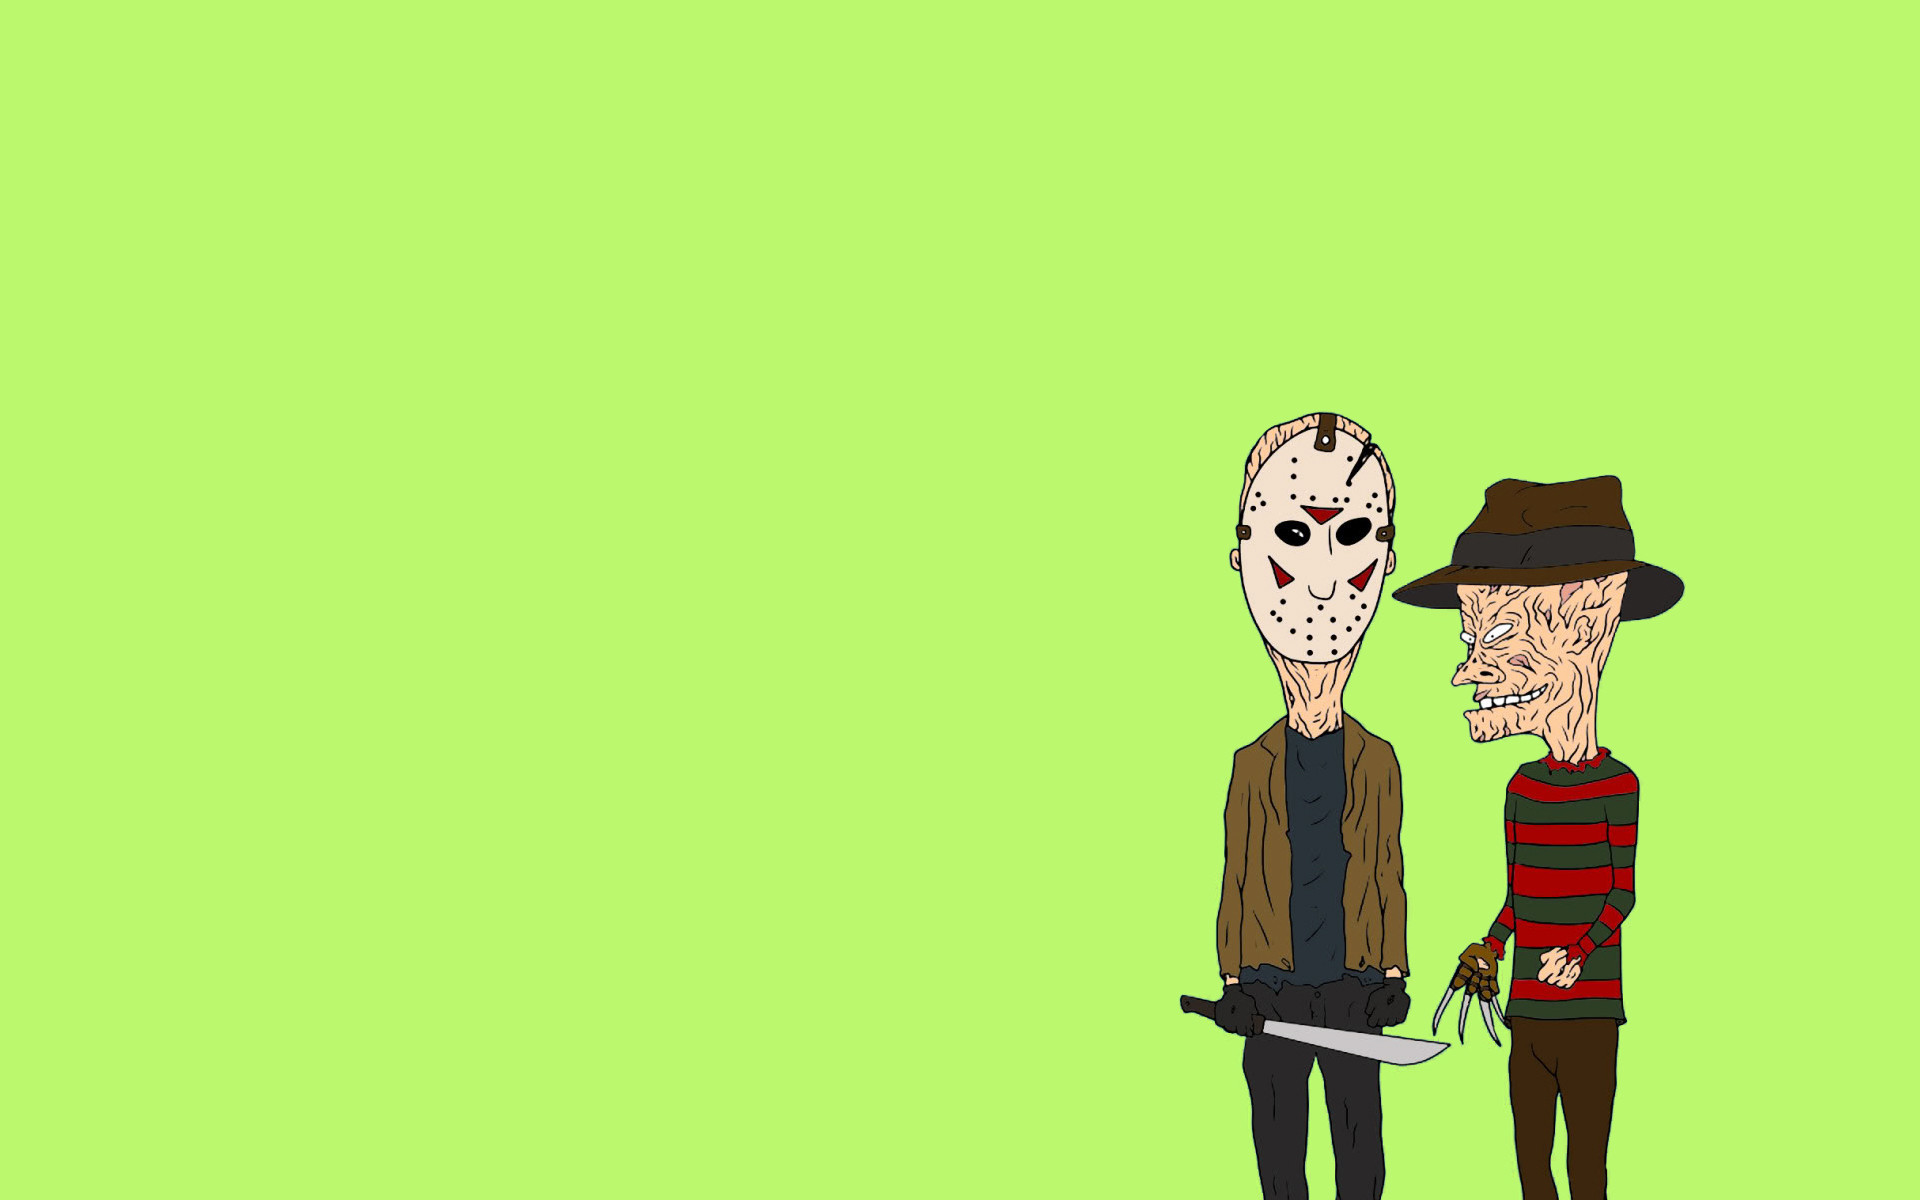 Res: 1920x1200, Movies Wallpaper. Download the following Jason Wallpapers Friday 13Th ...